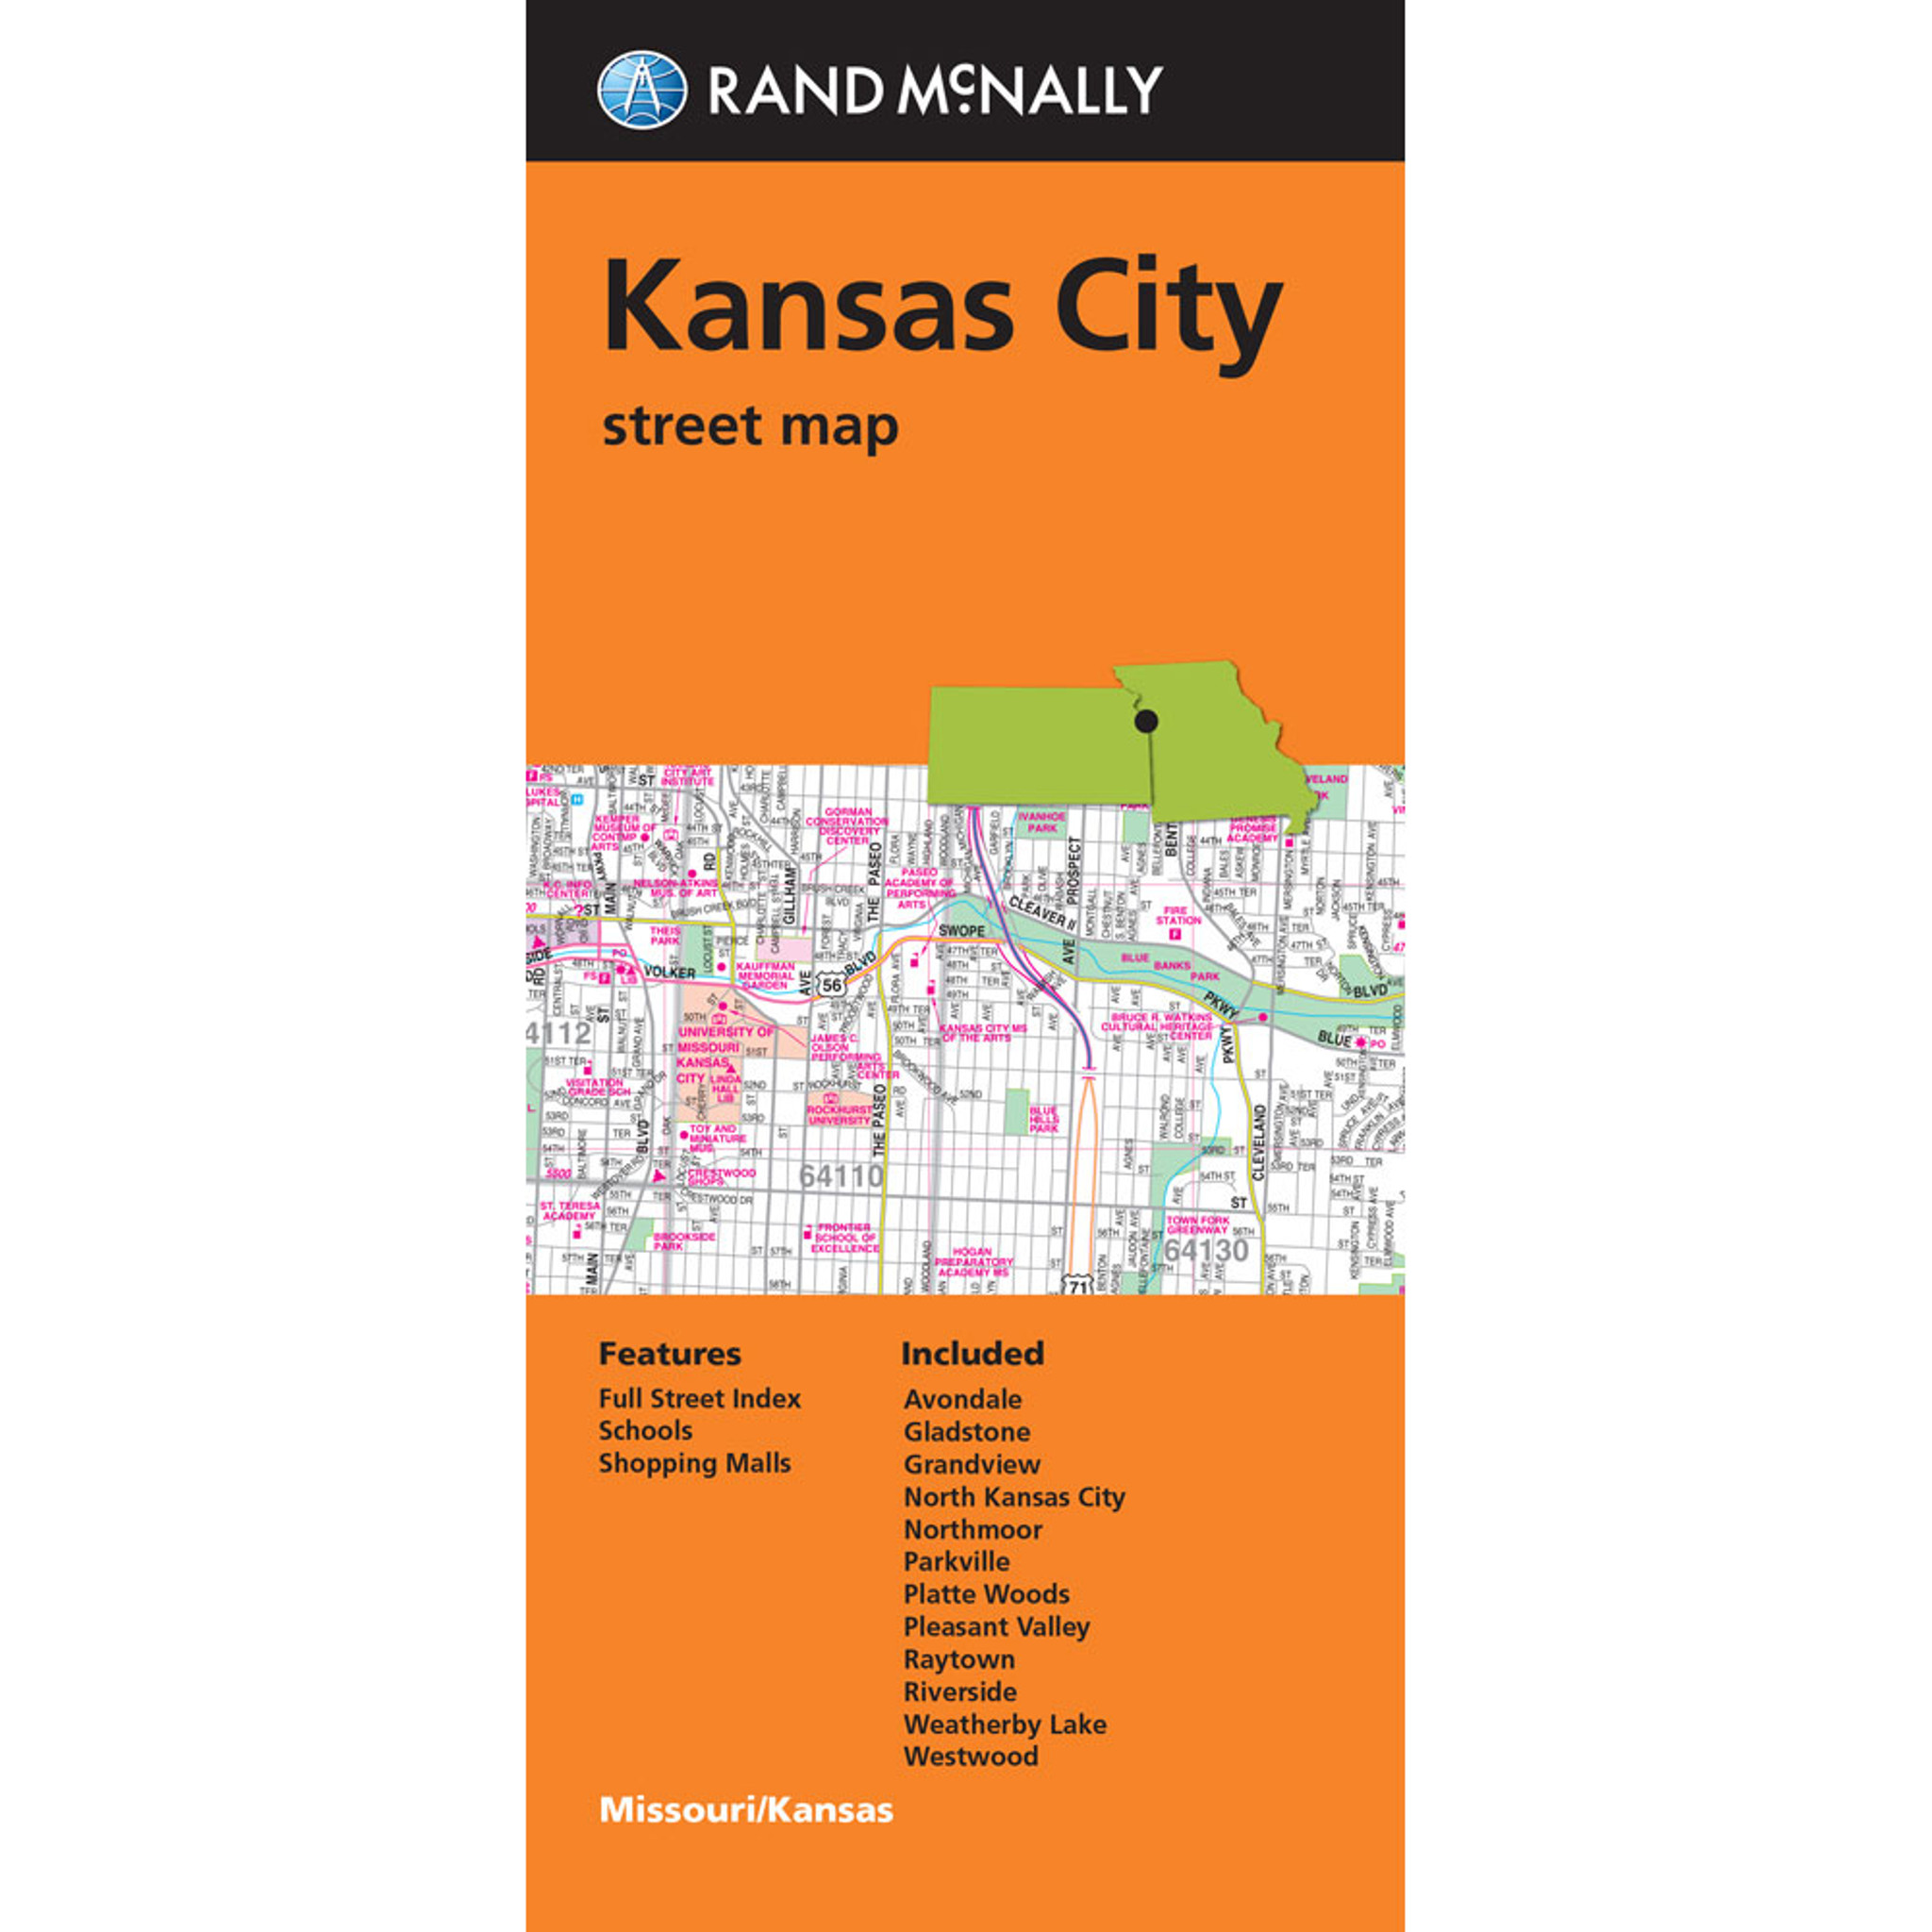 Folded Map: Kansas City Street Map on kansas city metro area counties, kansas city downtown hotels, topeka city street map, kansas city bad neighborhoods, kansas city mo, kansas city ks, kansas city hospital, kansas city history, la crosse area street map, overland park kansas crime map, weather topeka ks map, manhattan kansas map, kansas city in two states, kansas city metropolitan area, kansas city casino hotel, northland kansas city street map, kansas city map street guide, kansas city streets names, easy kansas highway map,